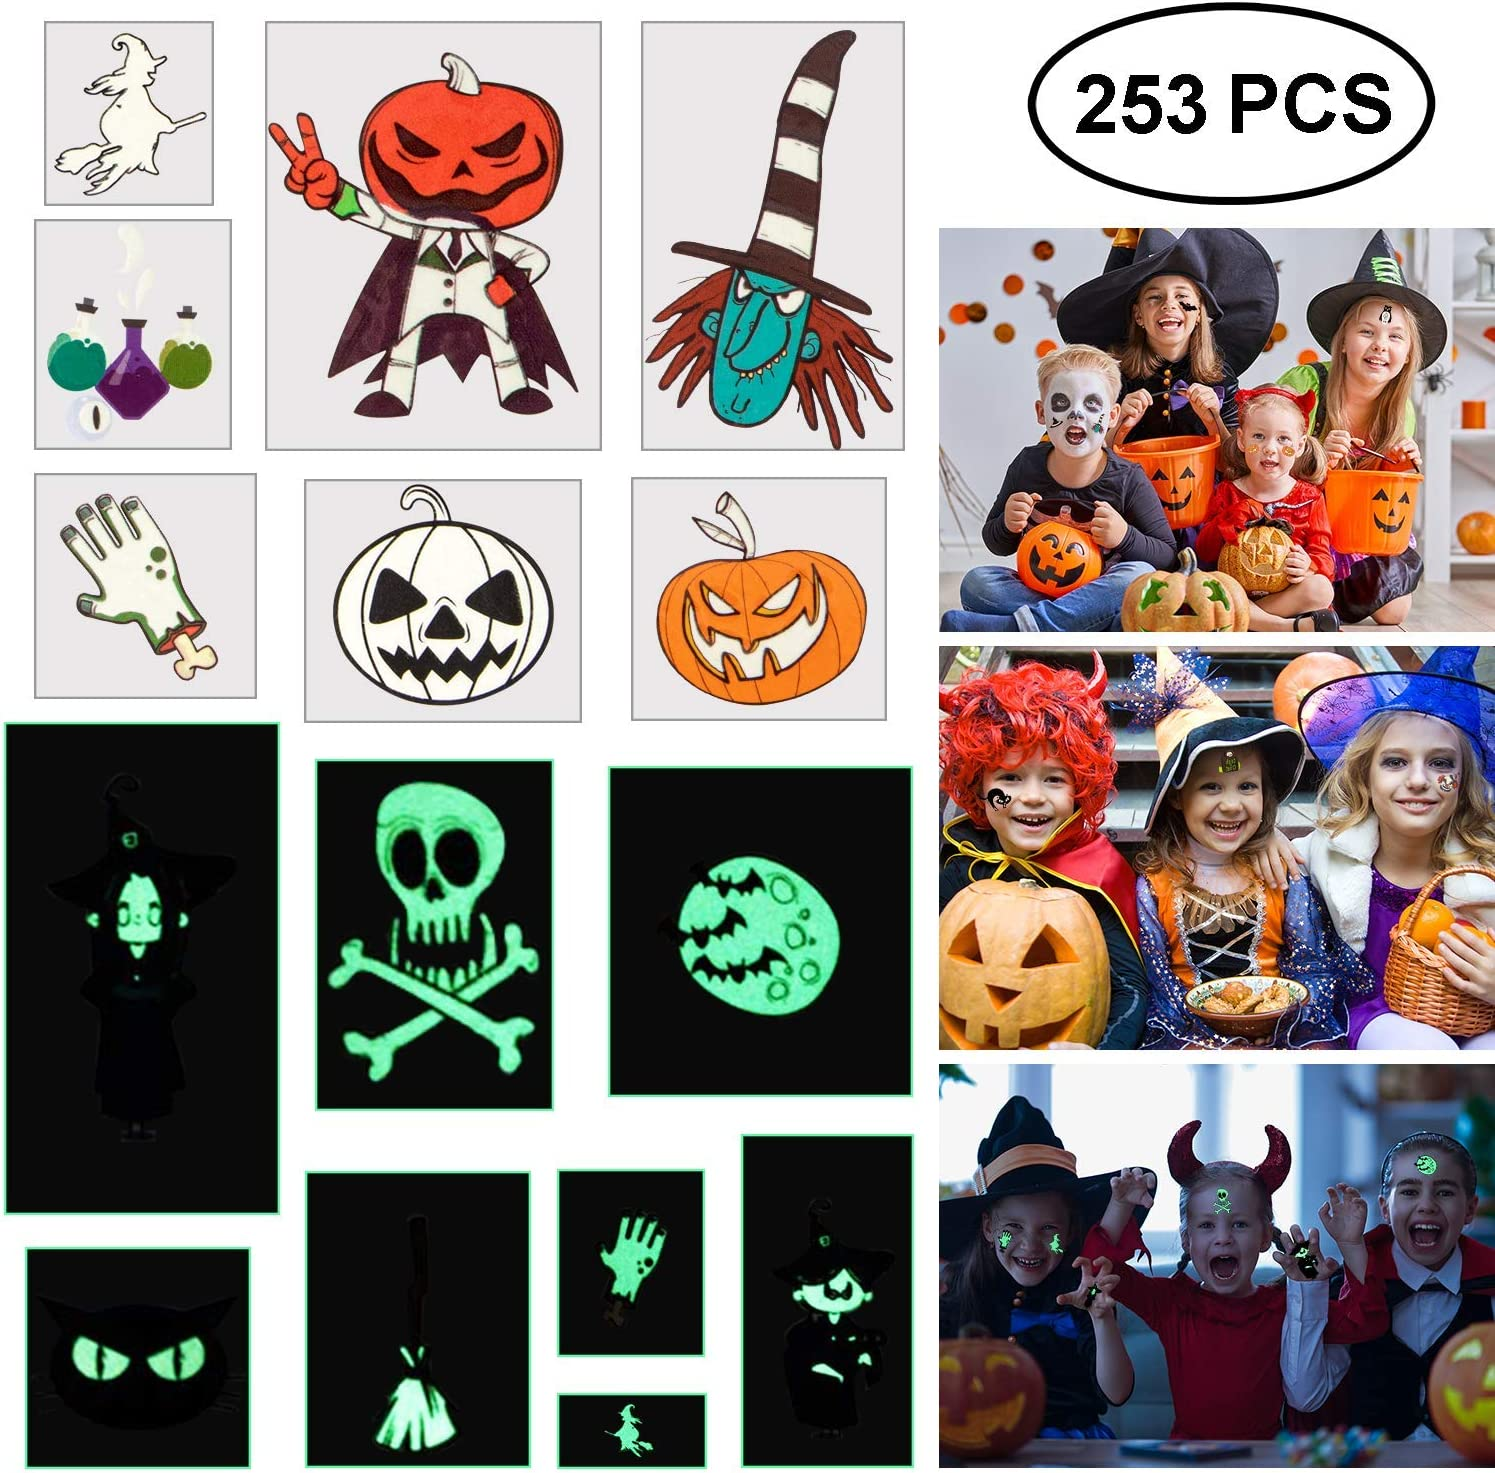 Blasoul Halloween Temporary Tattoos 253PCS Monster Tattoos Children Tattoos Waterproof Halloween Tattoo Stickers Noctilucent Stickers Bat Black Skeleton Web Zombie Ghost Tattoo Sticker for Boys Girls